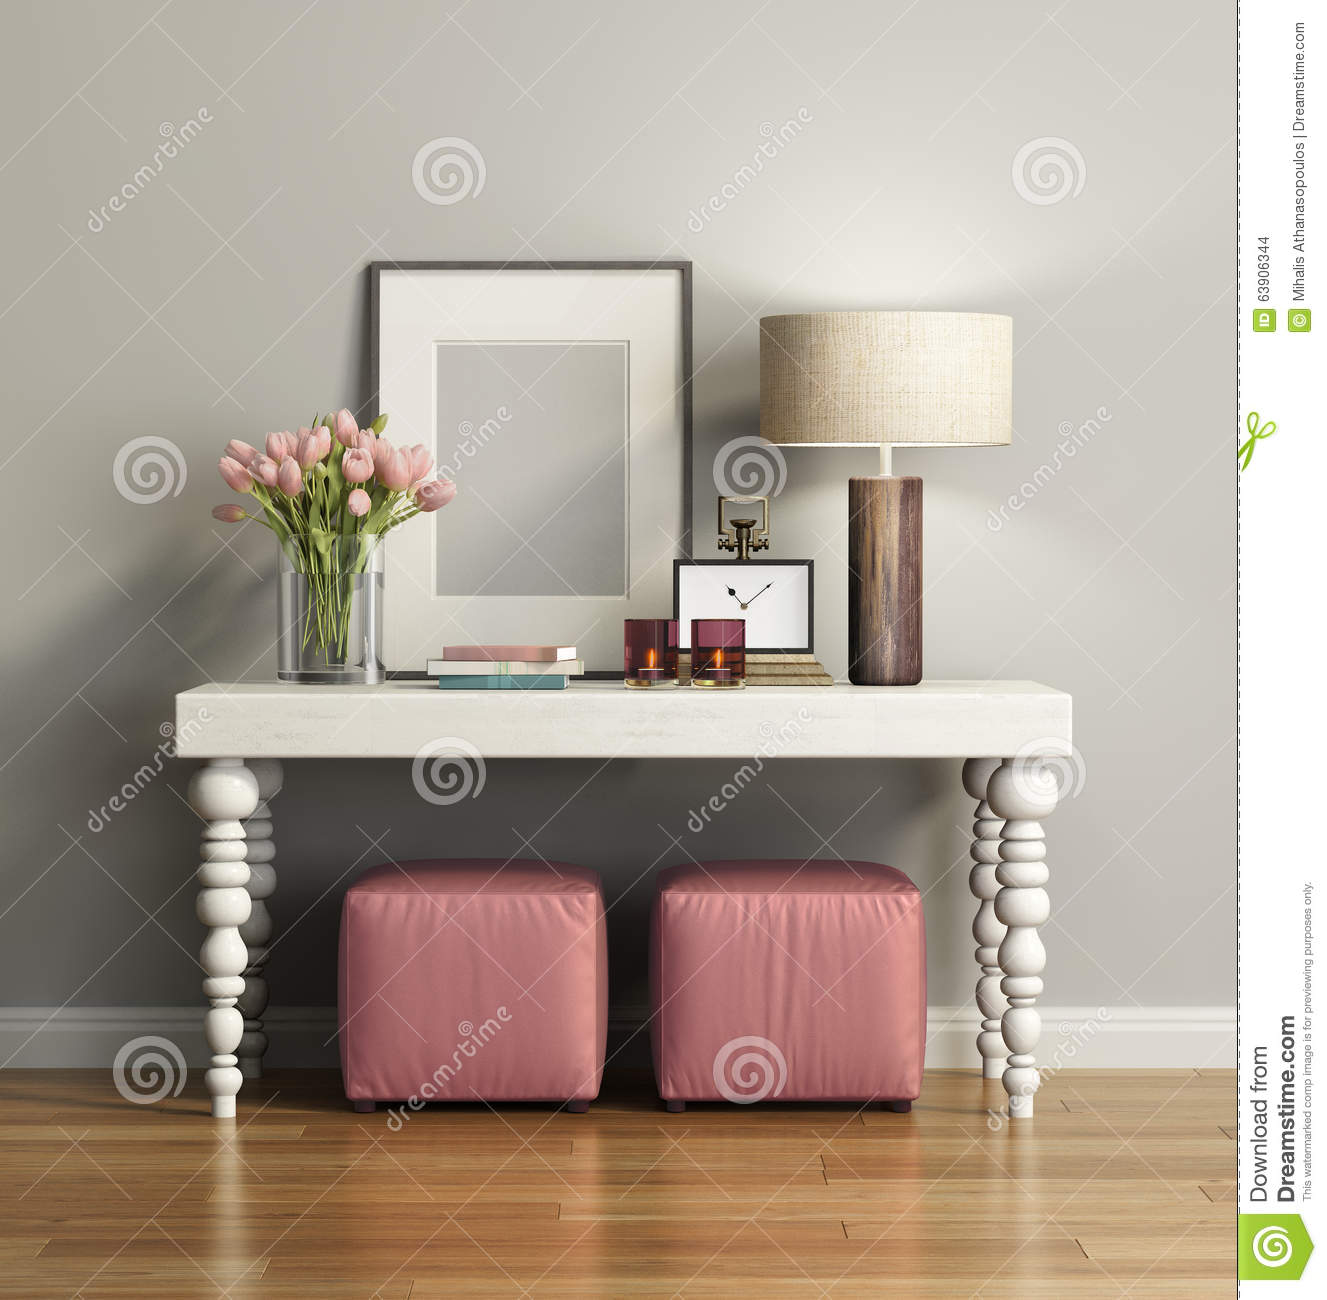 Elegant Chic Brown Console Table With Stools Stock Illustration  Image 63906344